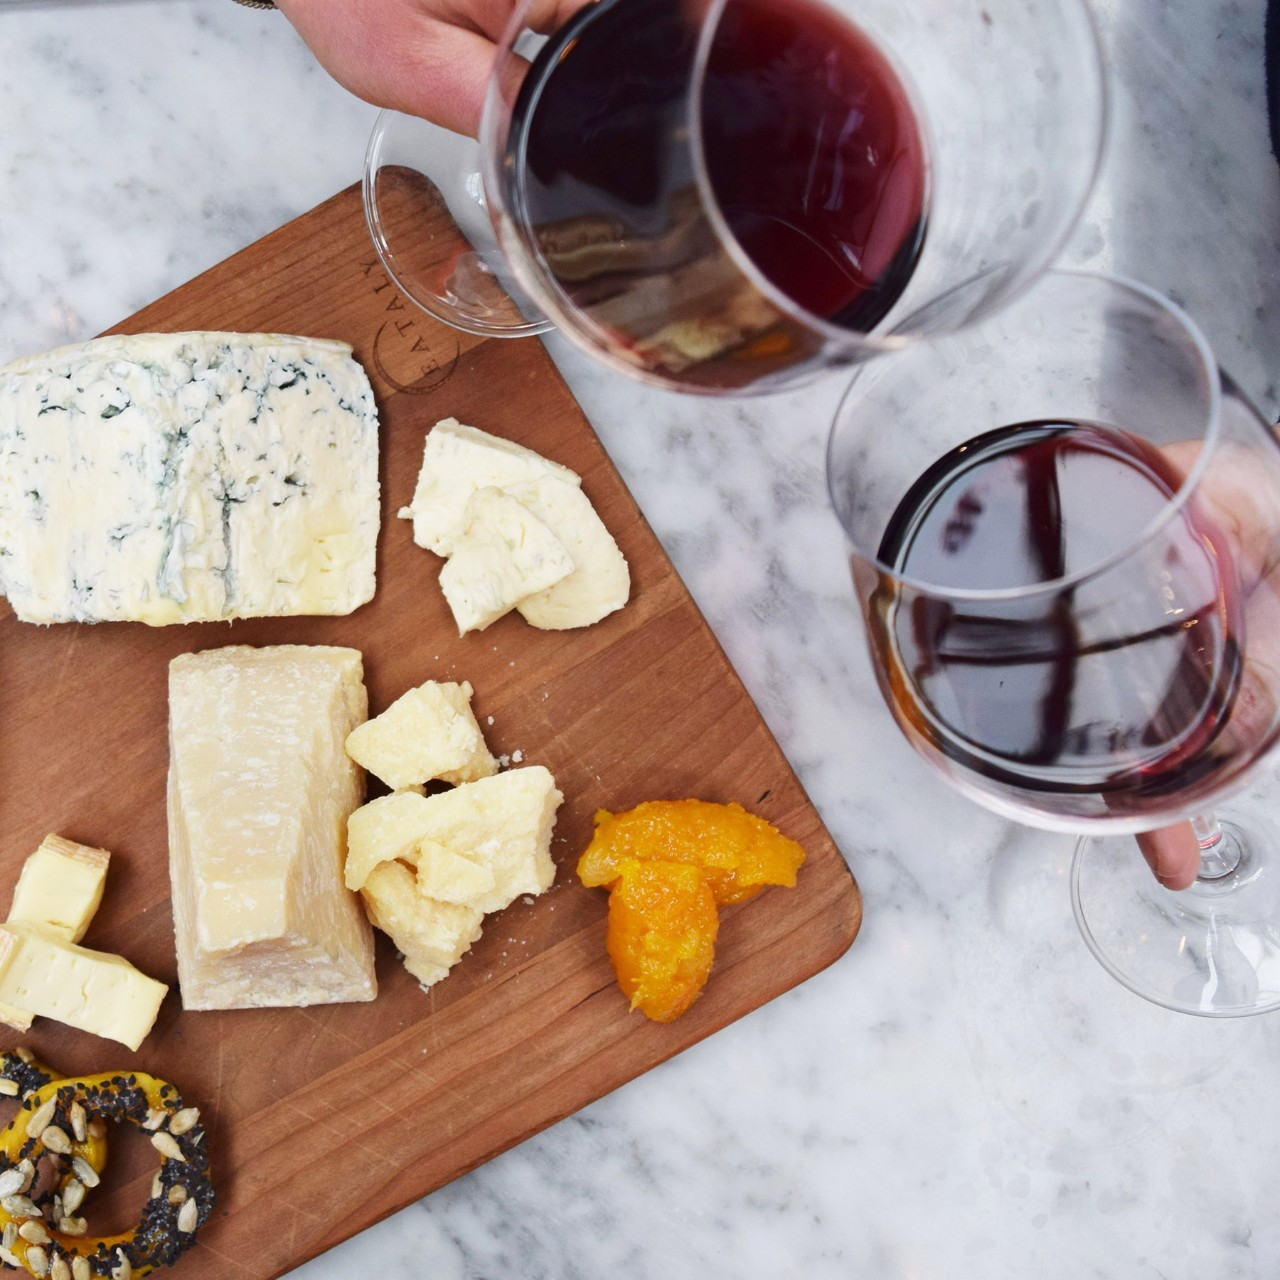 Patrons clink wine glasses and enjoy a cheeseboard at Eataly World Trade Center